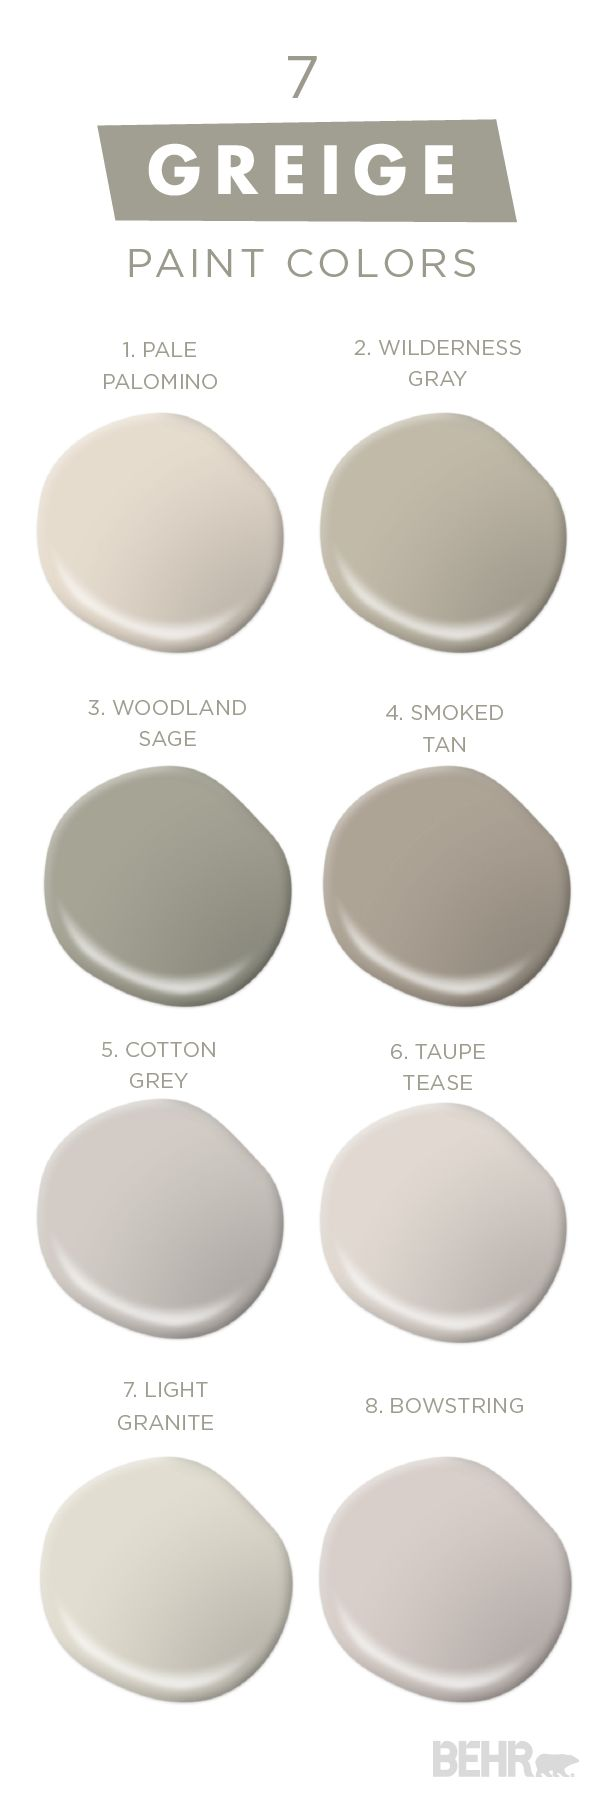 244 best images about behr paints on pinterest paint for Behr neutral beige paint colors